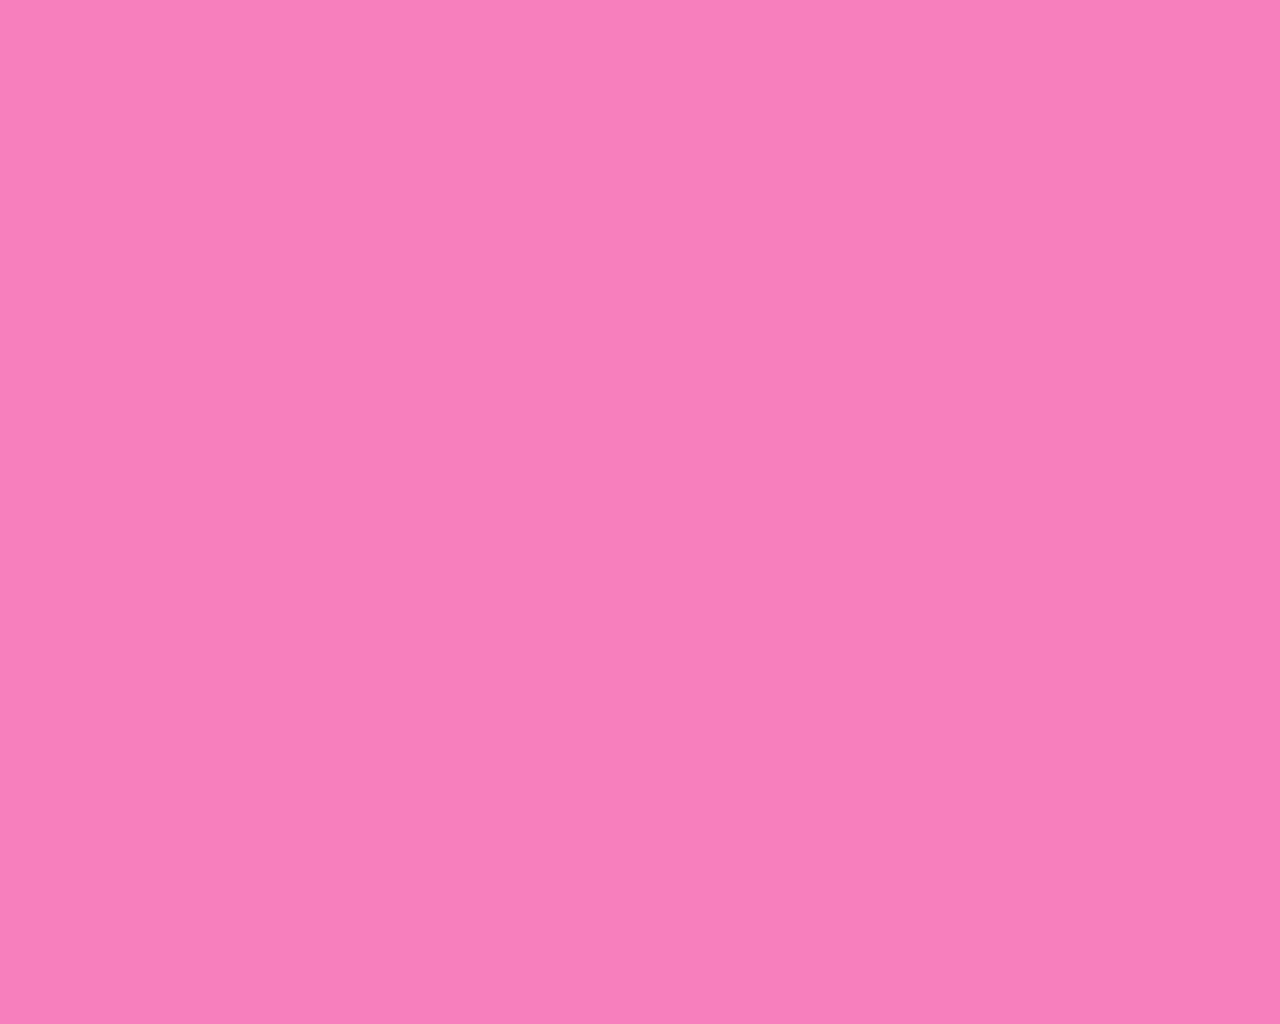 1280x1024 Persian Pink Solid Color Background